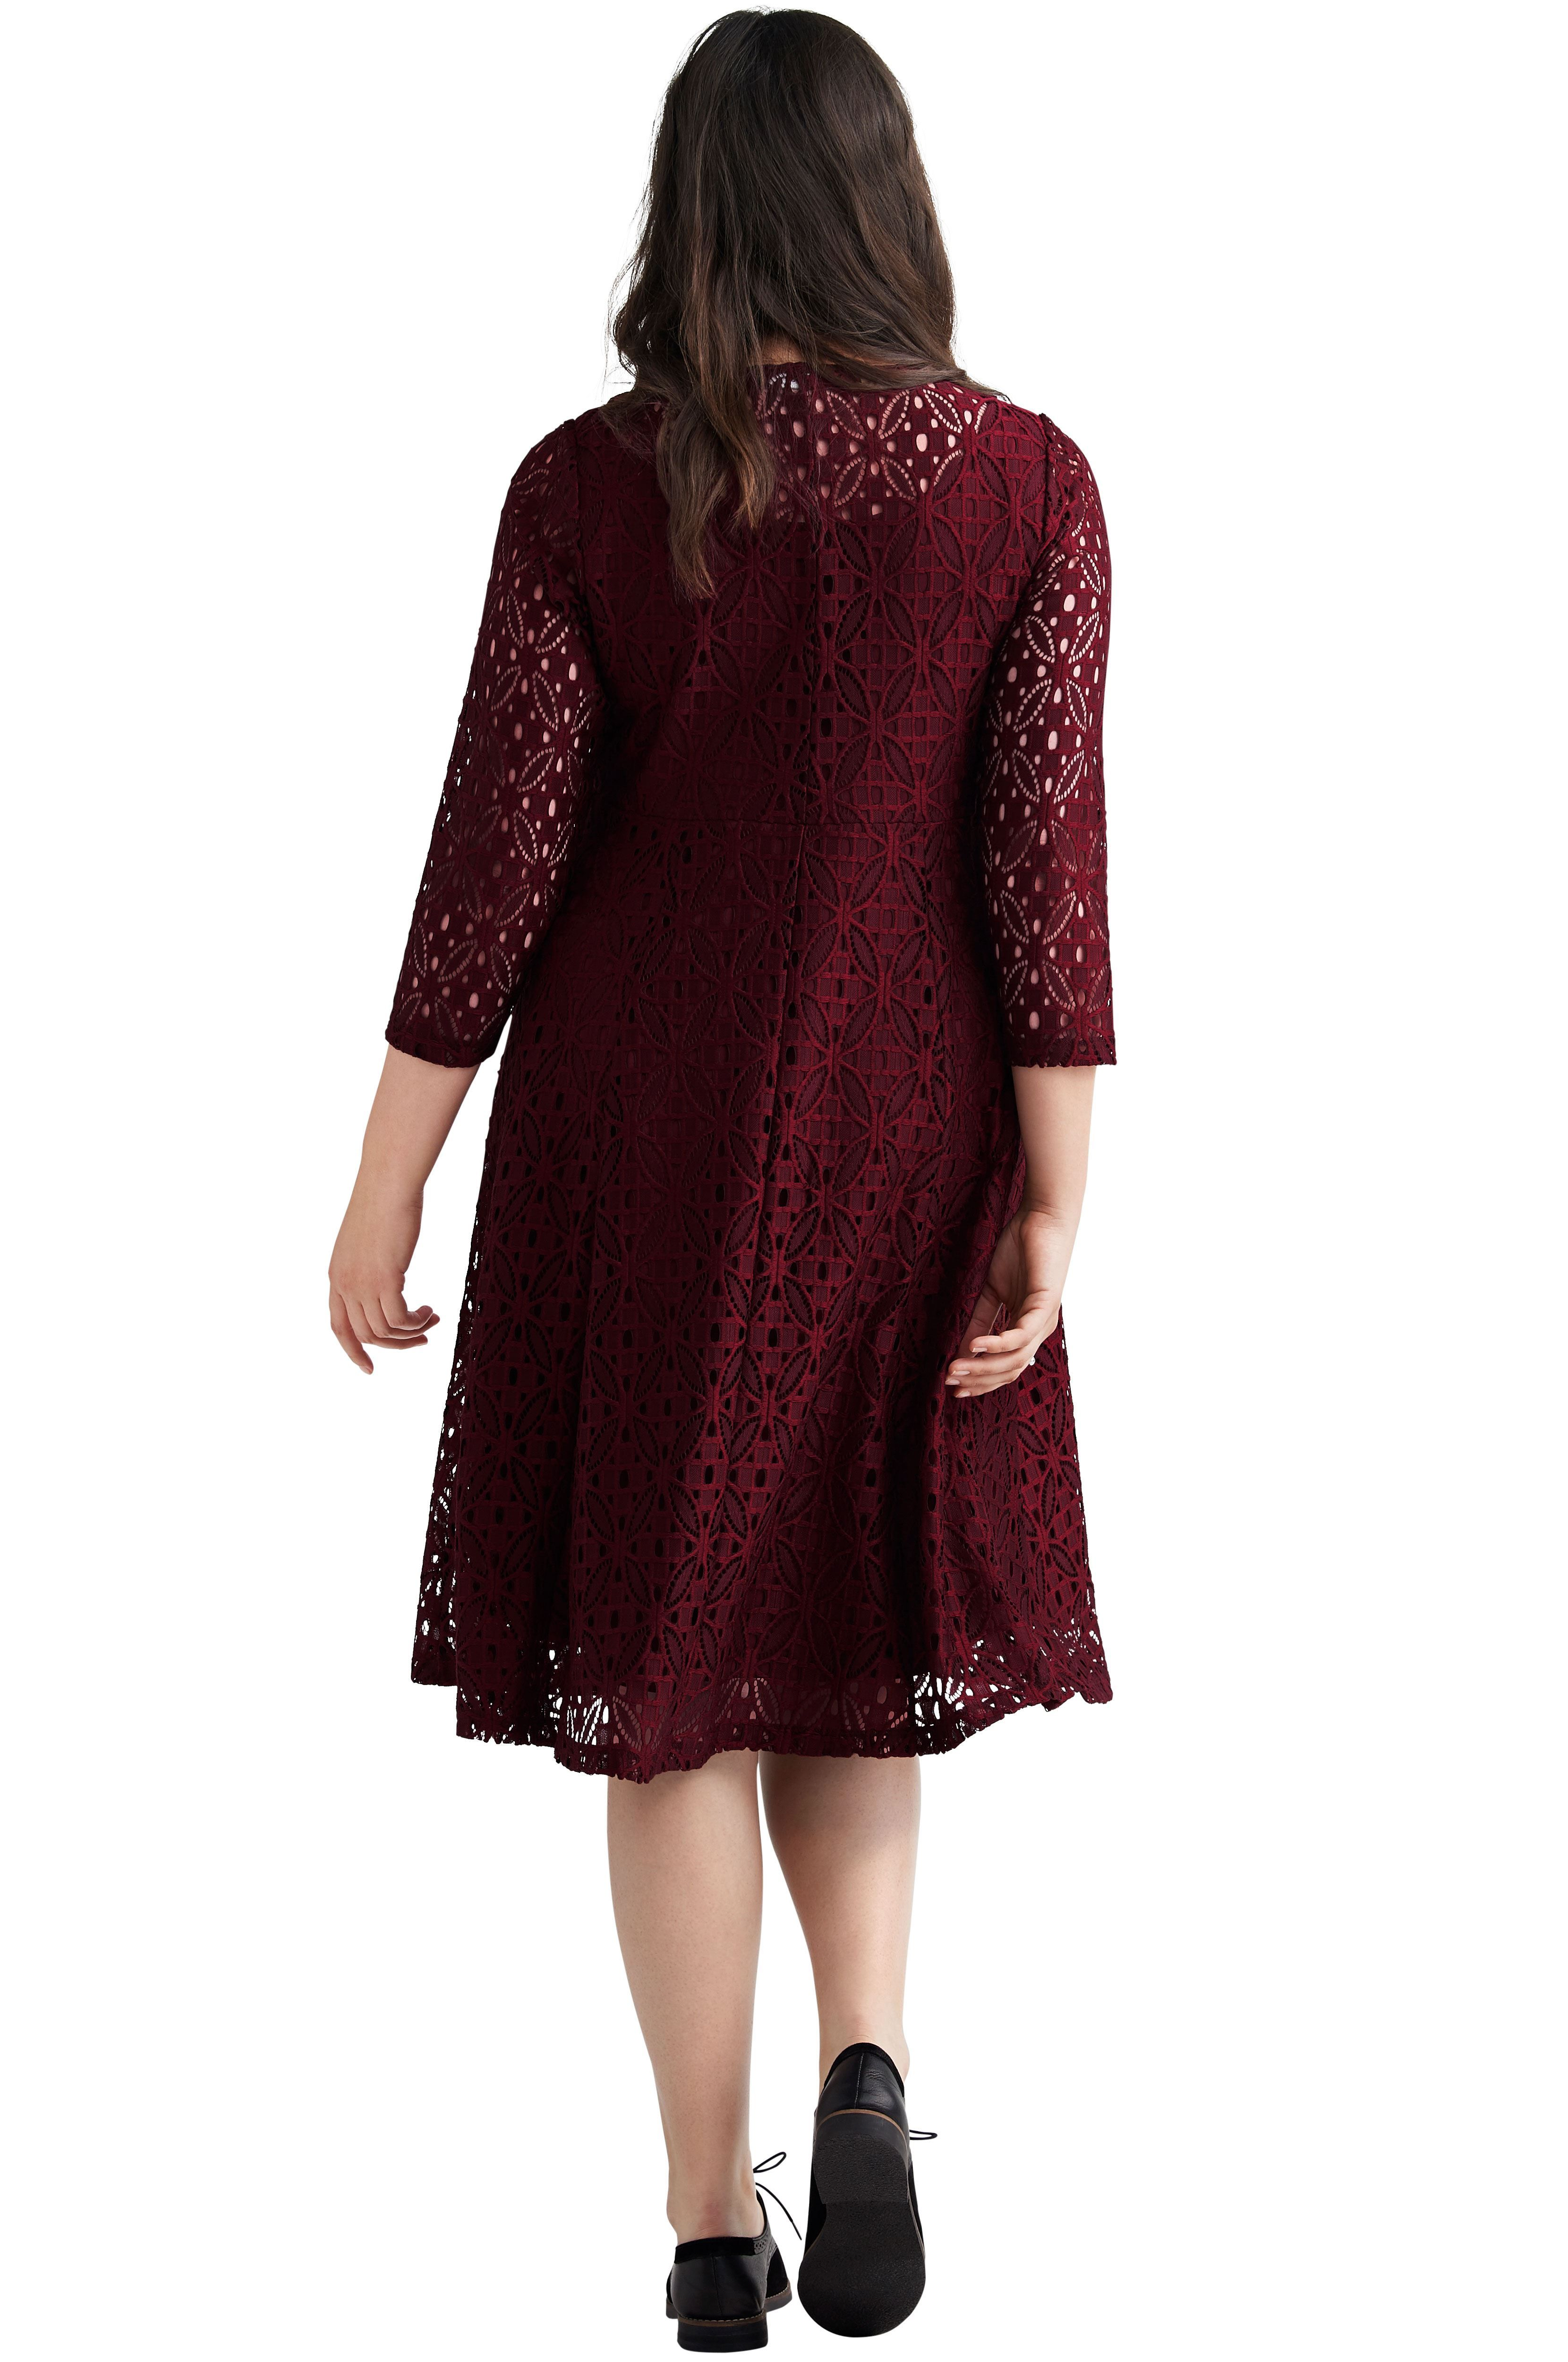 83e5f699 Fit & Flare Stretch Lace Dress by ellos - Women's Plus Size Clothing ...